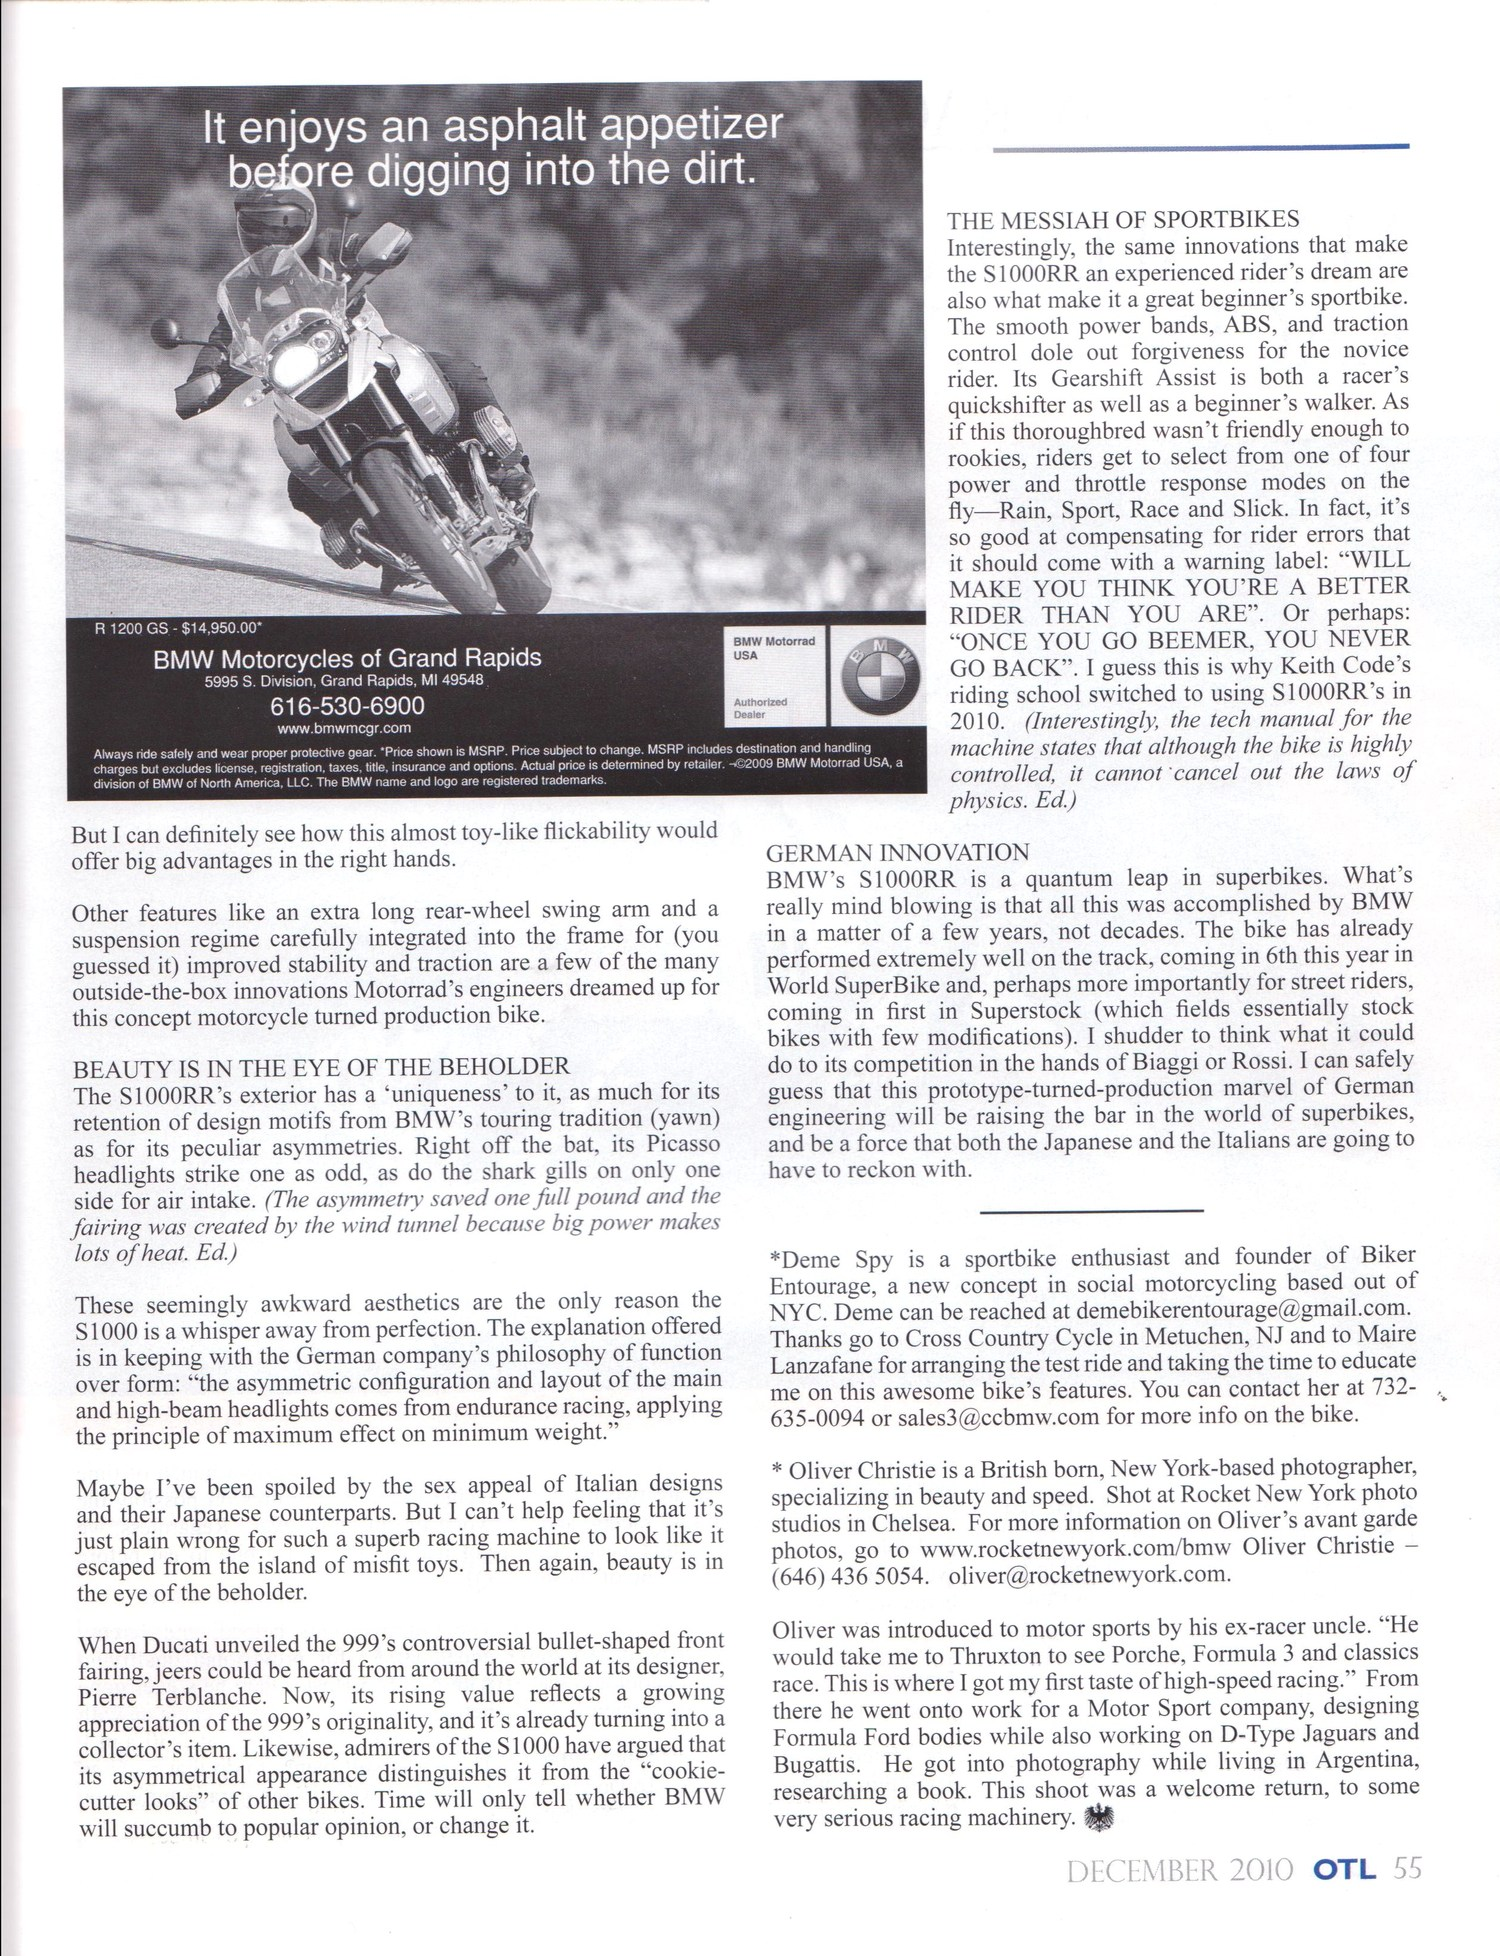 S1000RR Review p.2